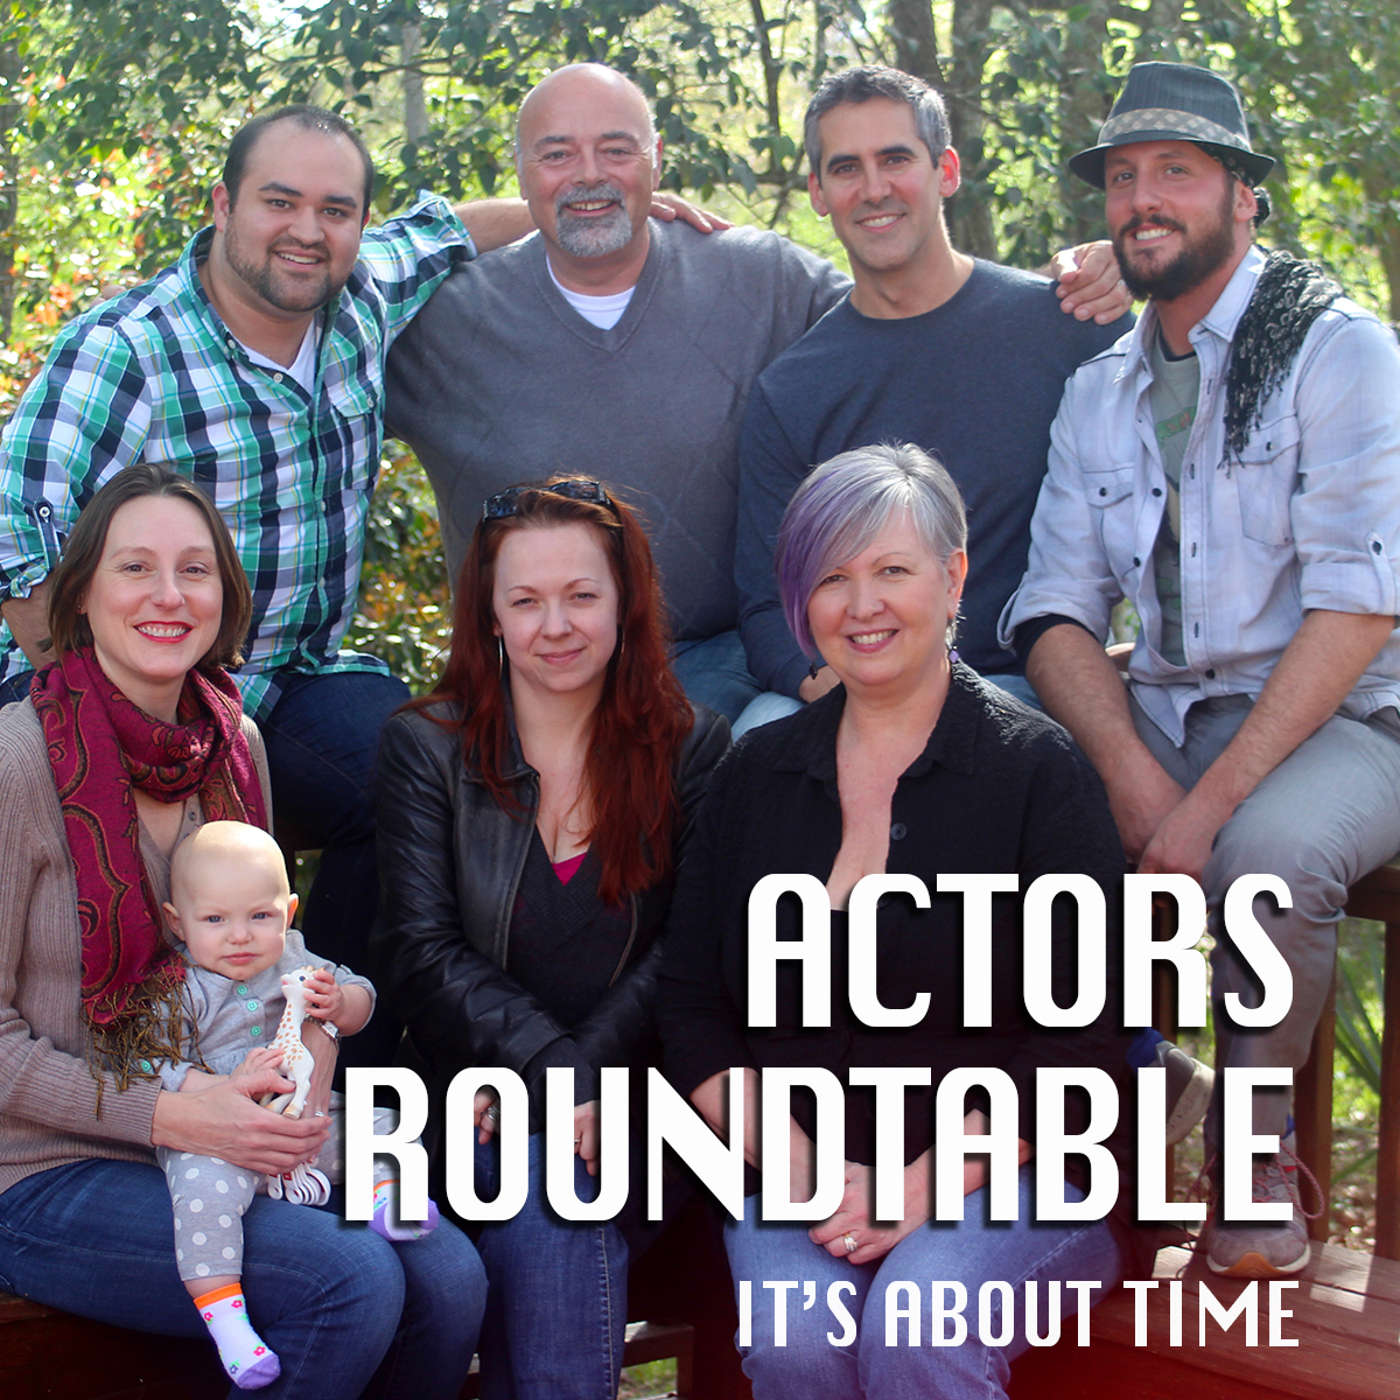 Actor's Roundtable - The actors of this sci-fi comedy audio drama discuss season 1